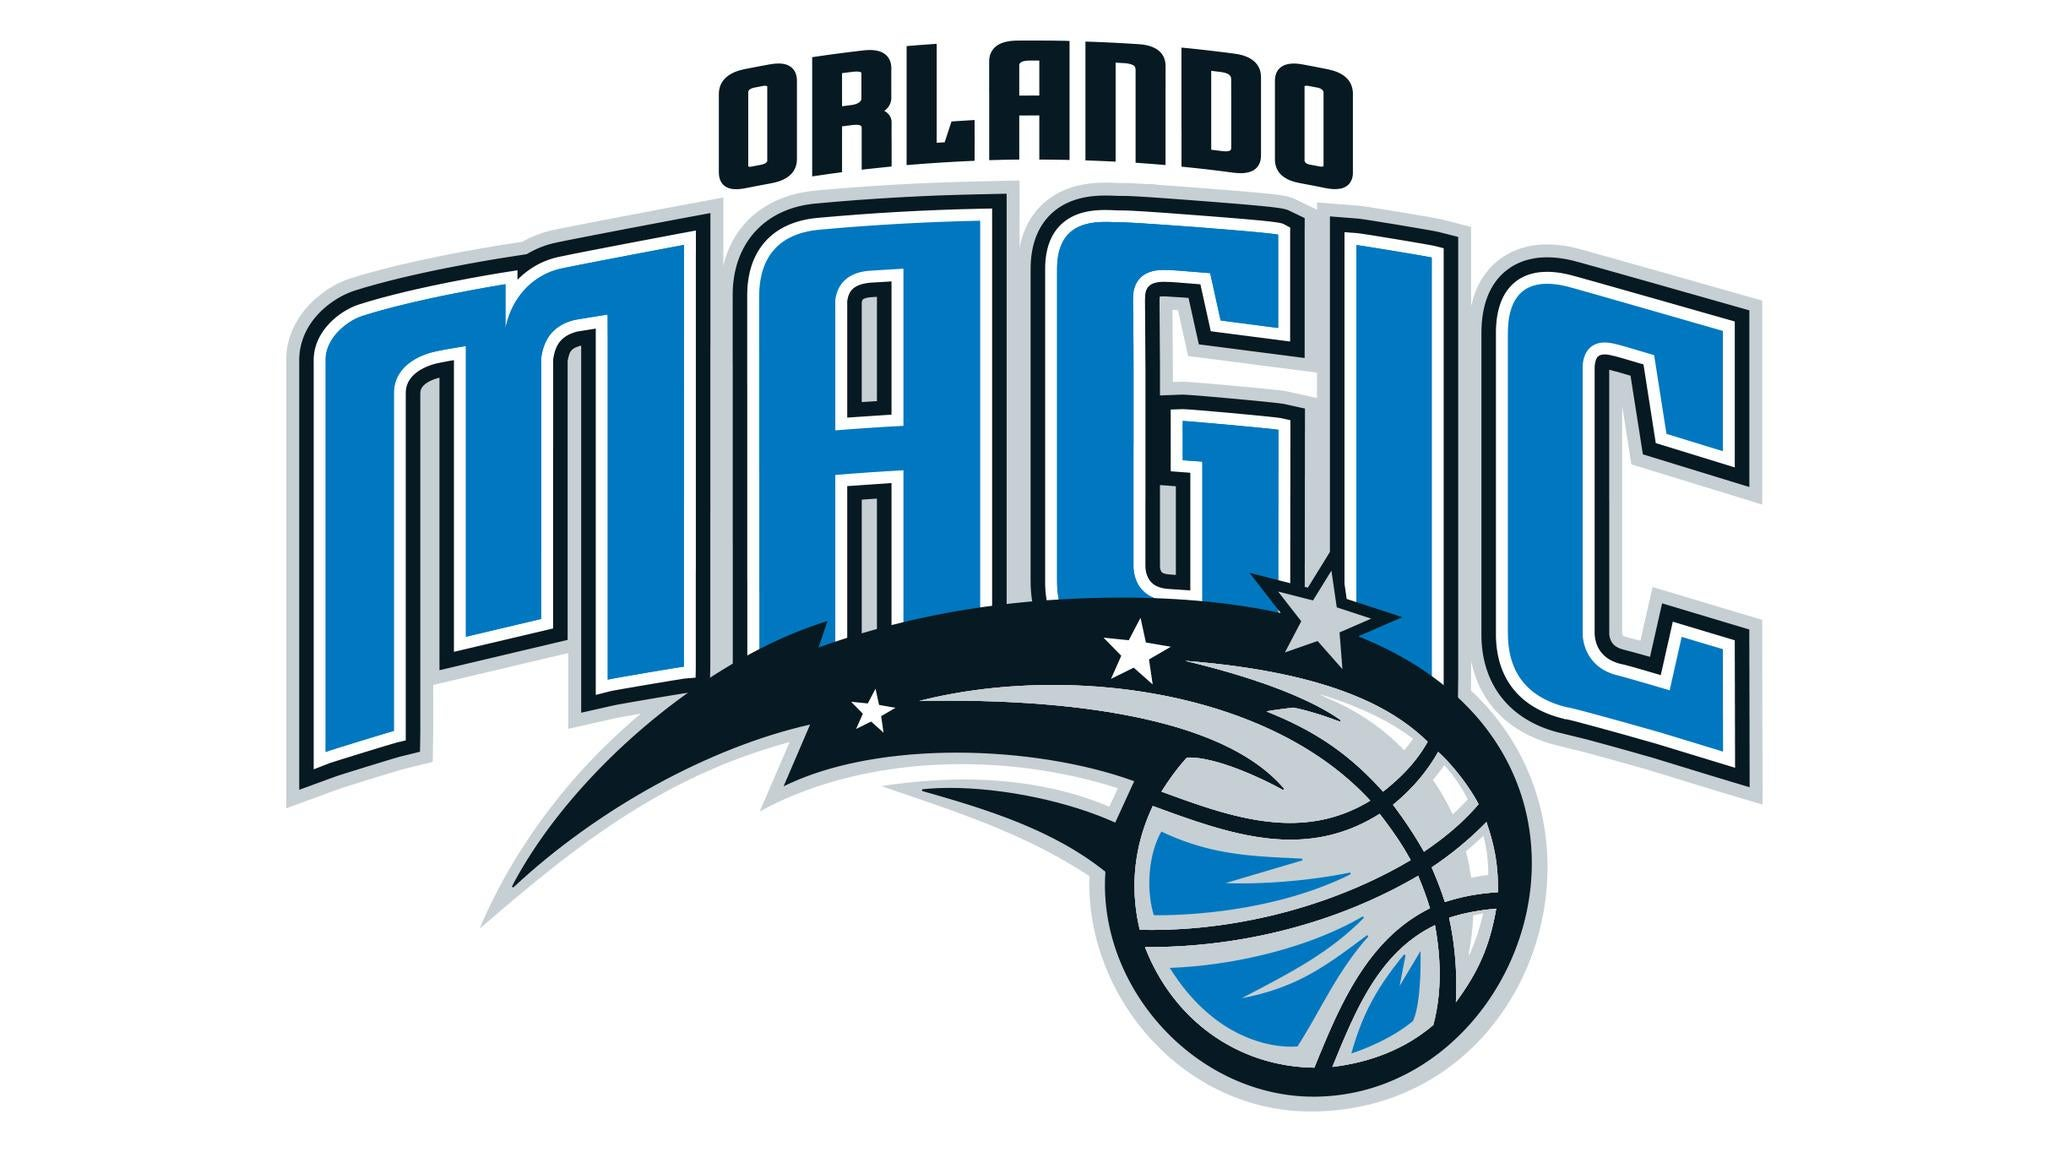 Orlando Magic vs. Dallas Mavericks at Amway Center